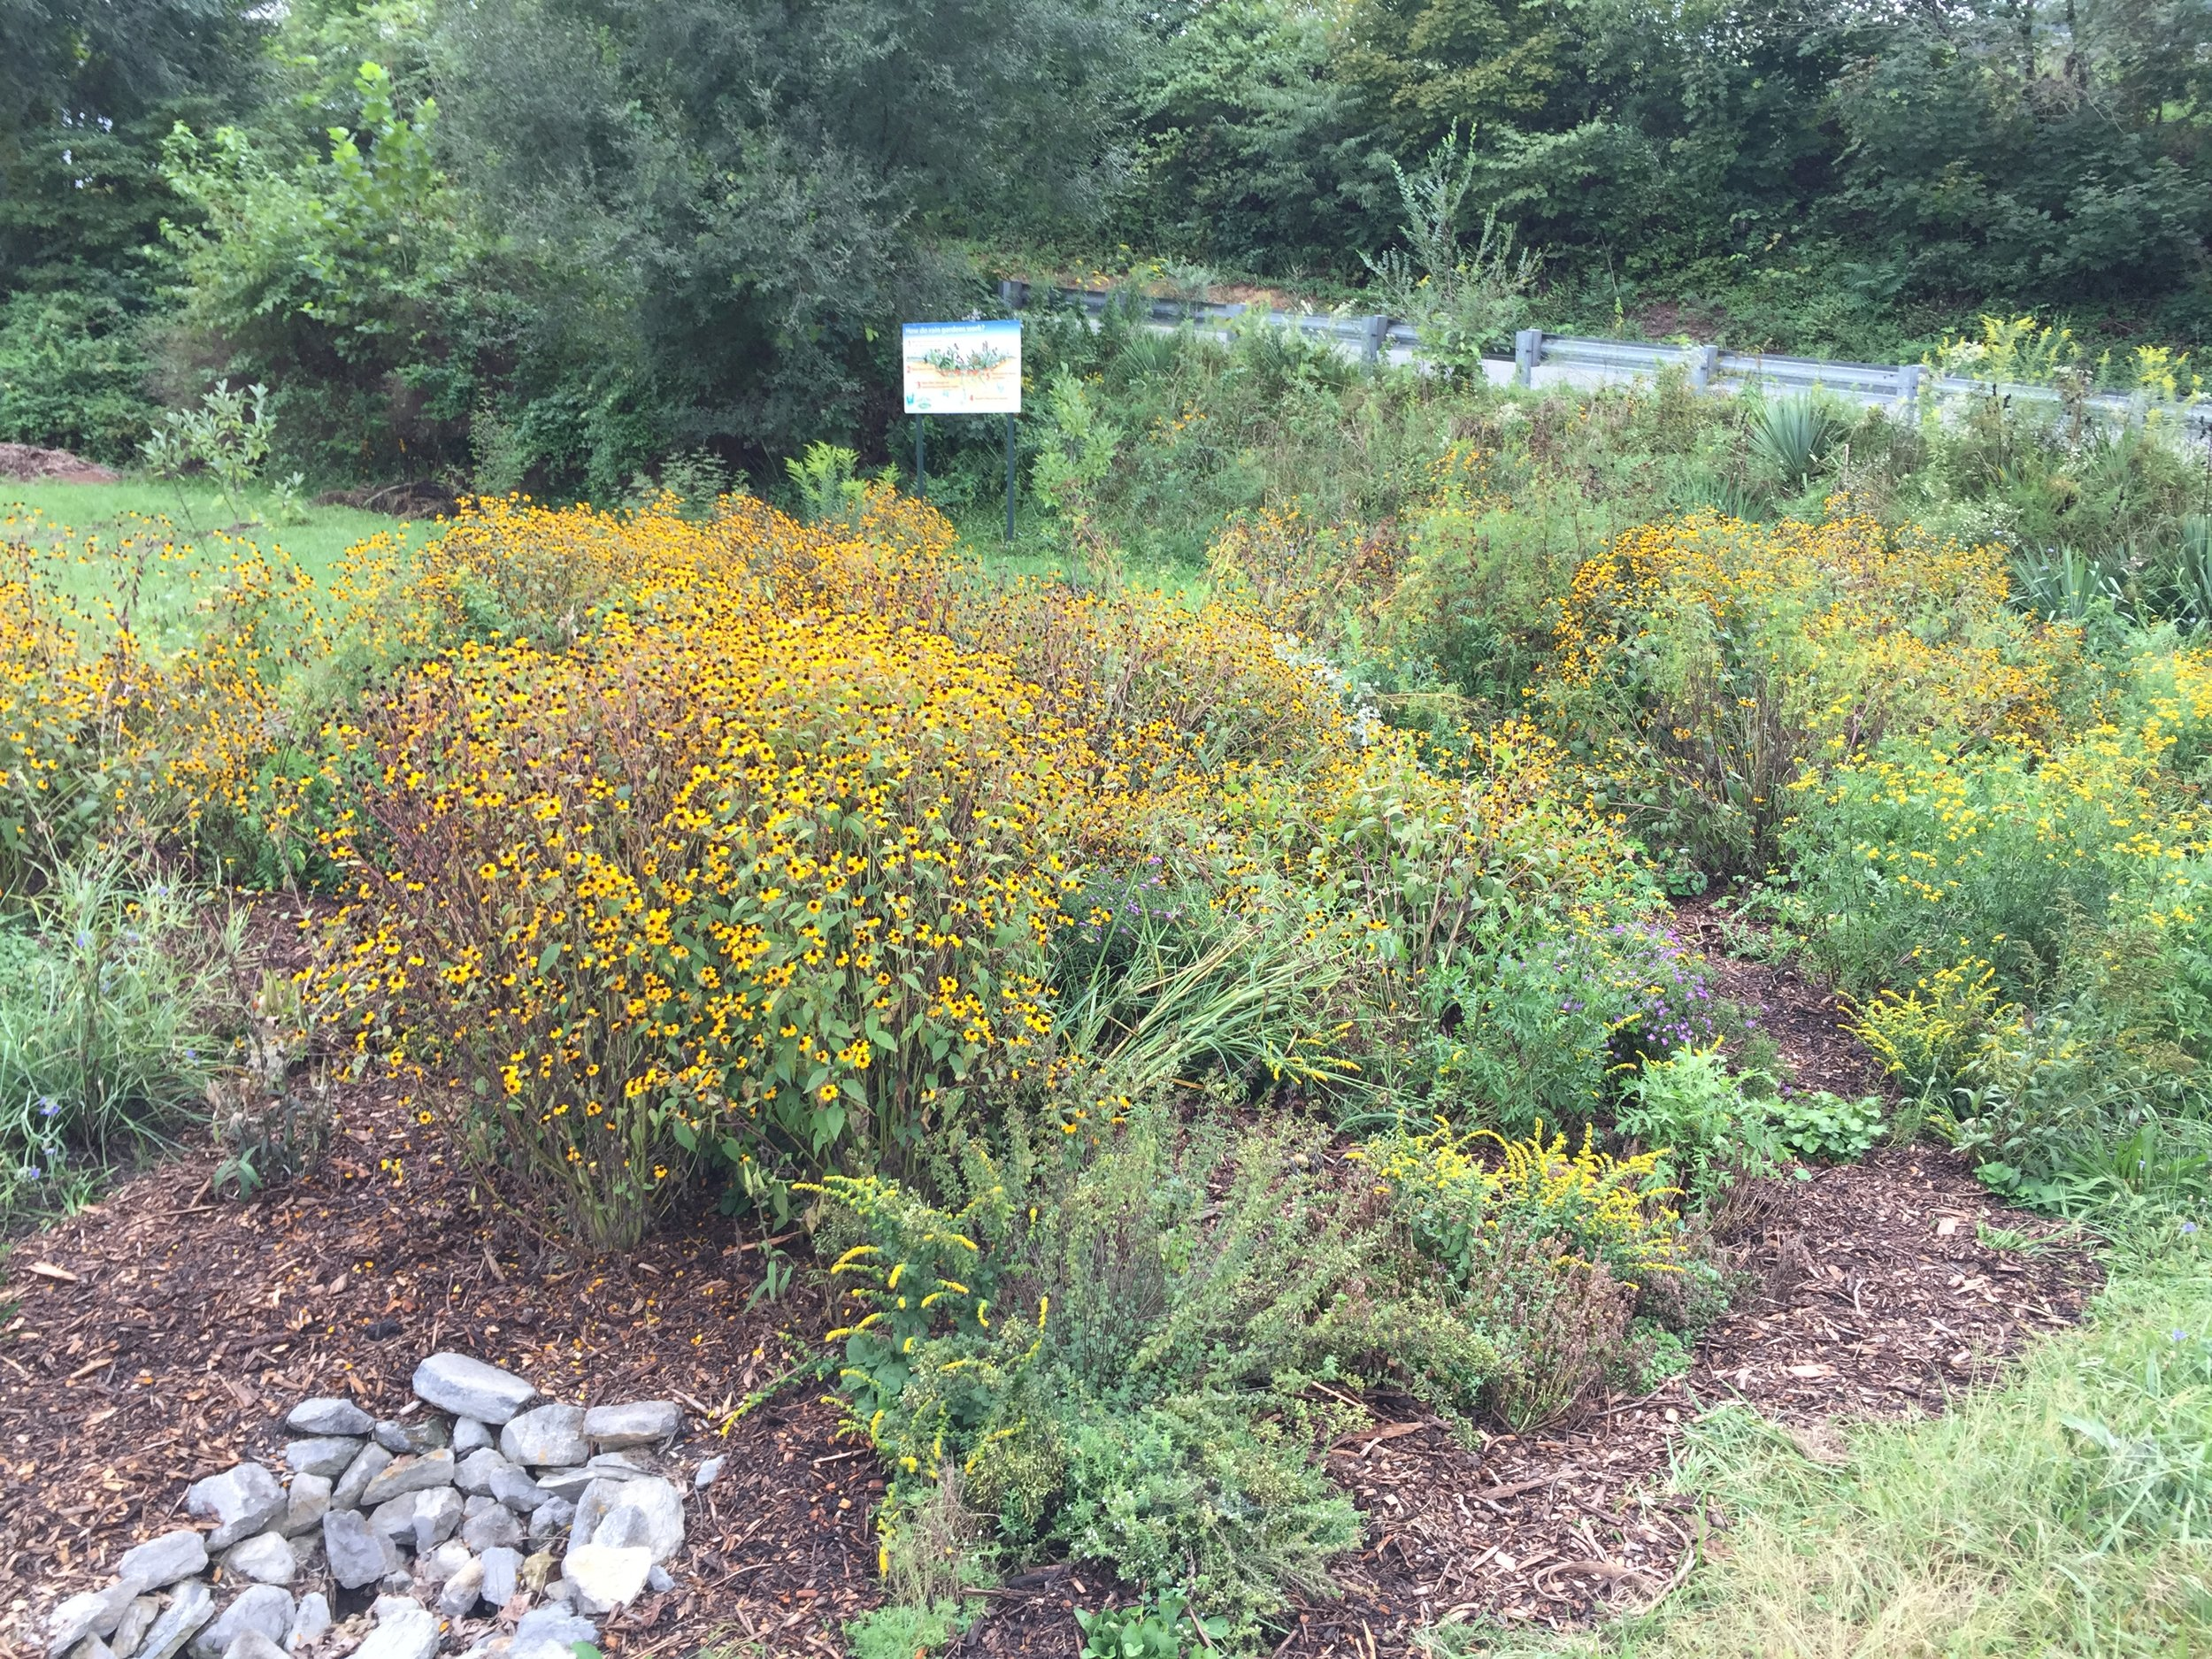 This rain garden is located at the bottom of Greenway Cemetery in Berkeley Springs. The project was made possible by funding from the National Fish and Wildlife Foundation.